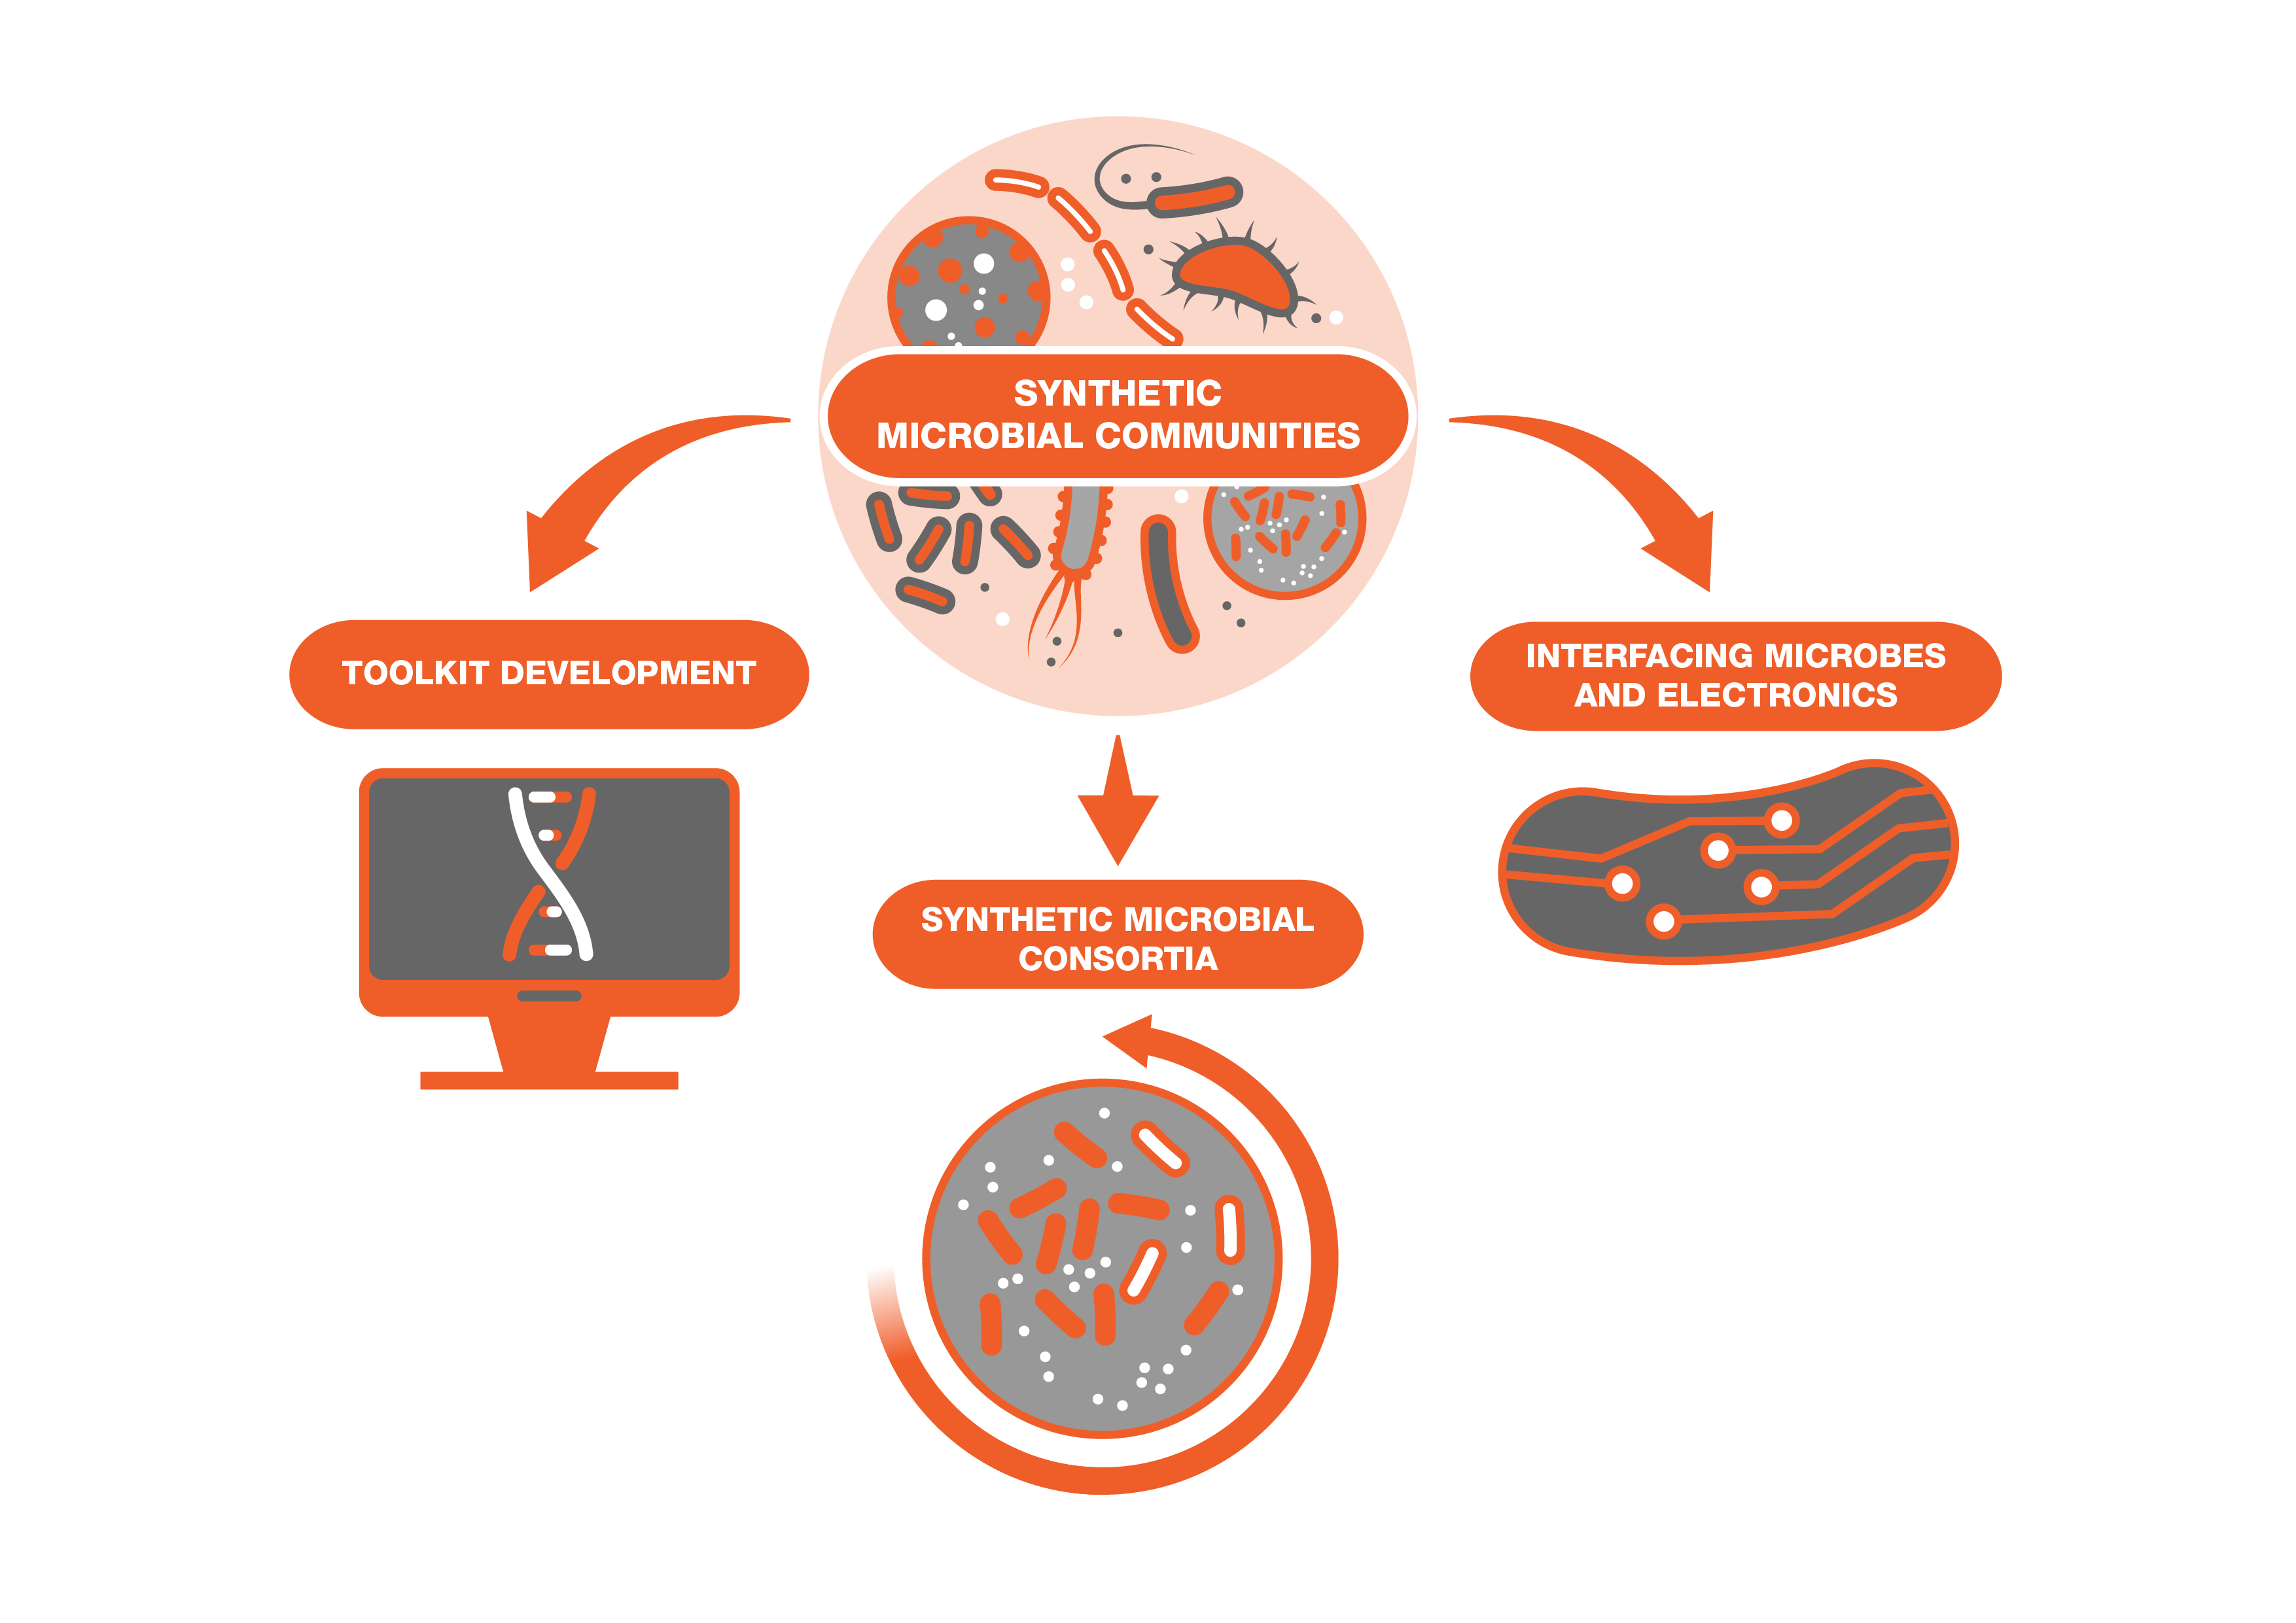 Synthetic Microbial Communities